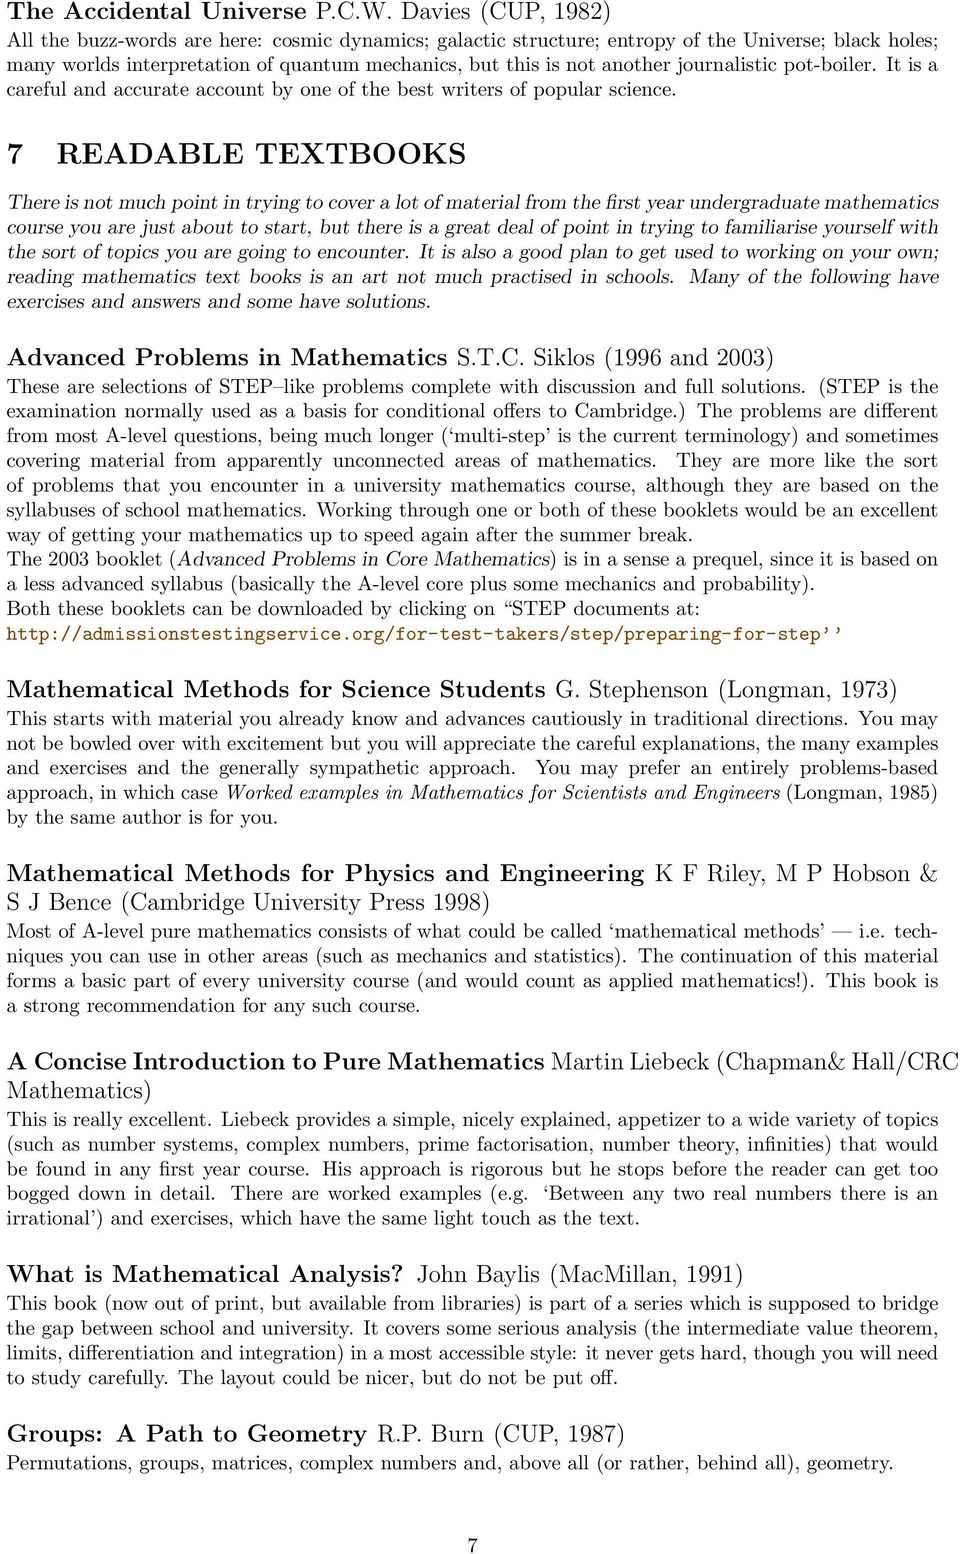 MATHEMATICAL READING LIST - PDF